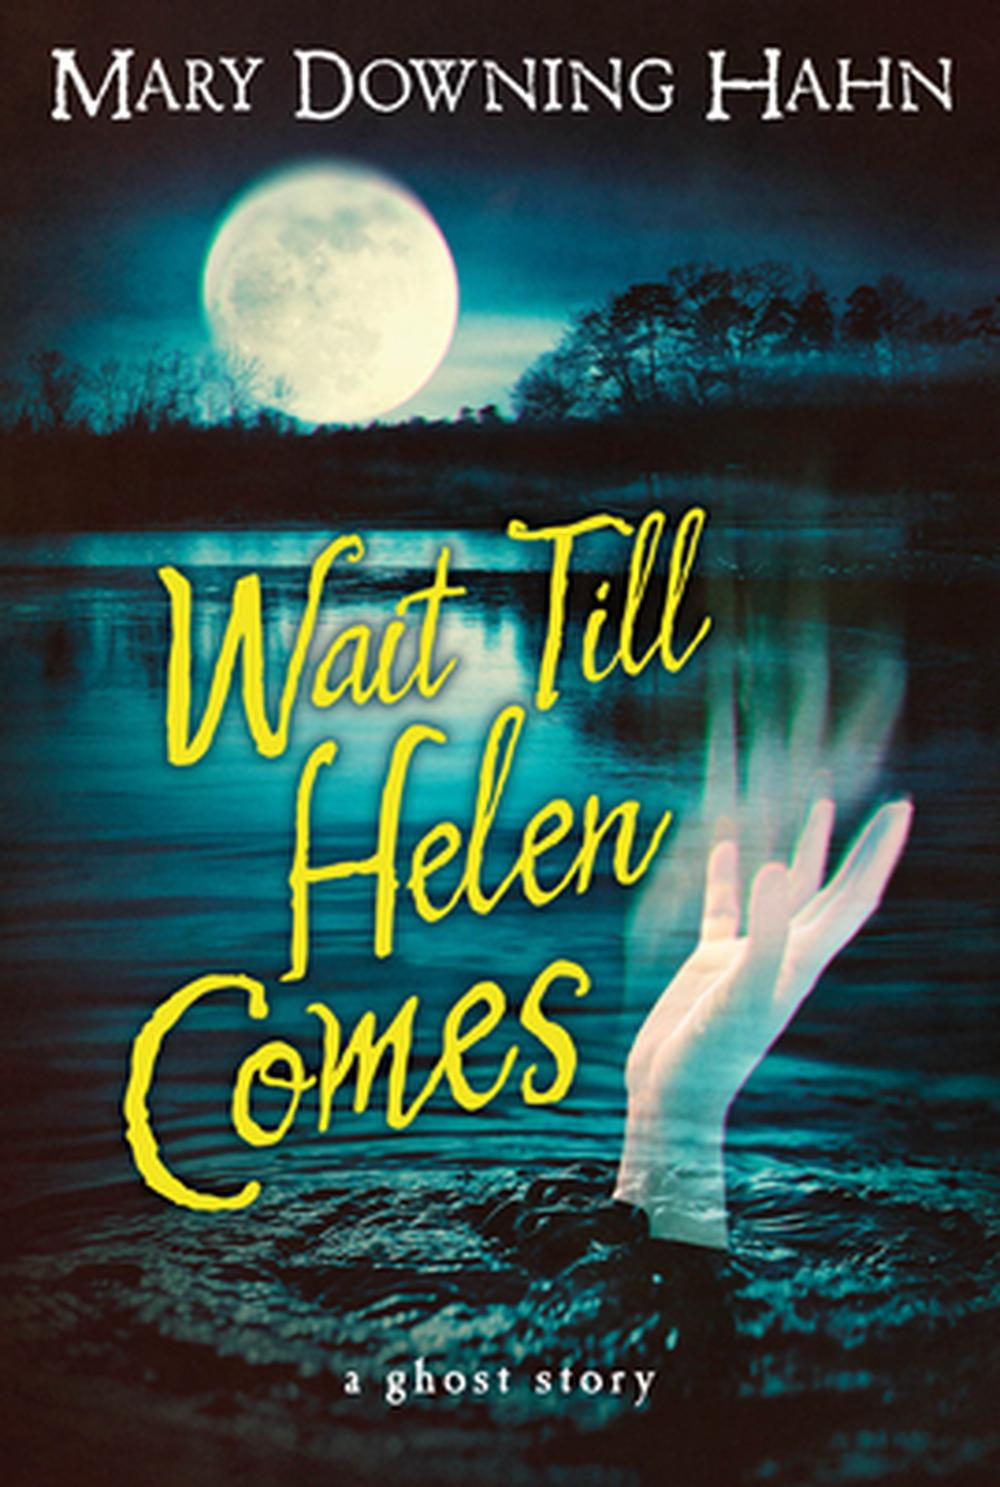 Wait Till Helen Comes by Mary Downing Hahn, ISBN: 9780547028644